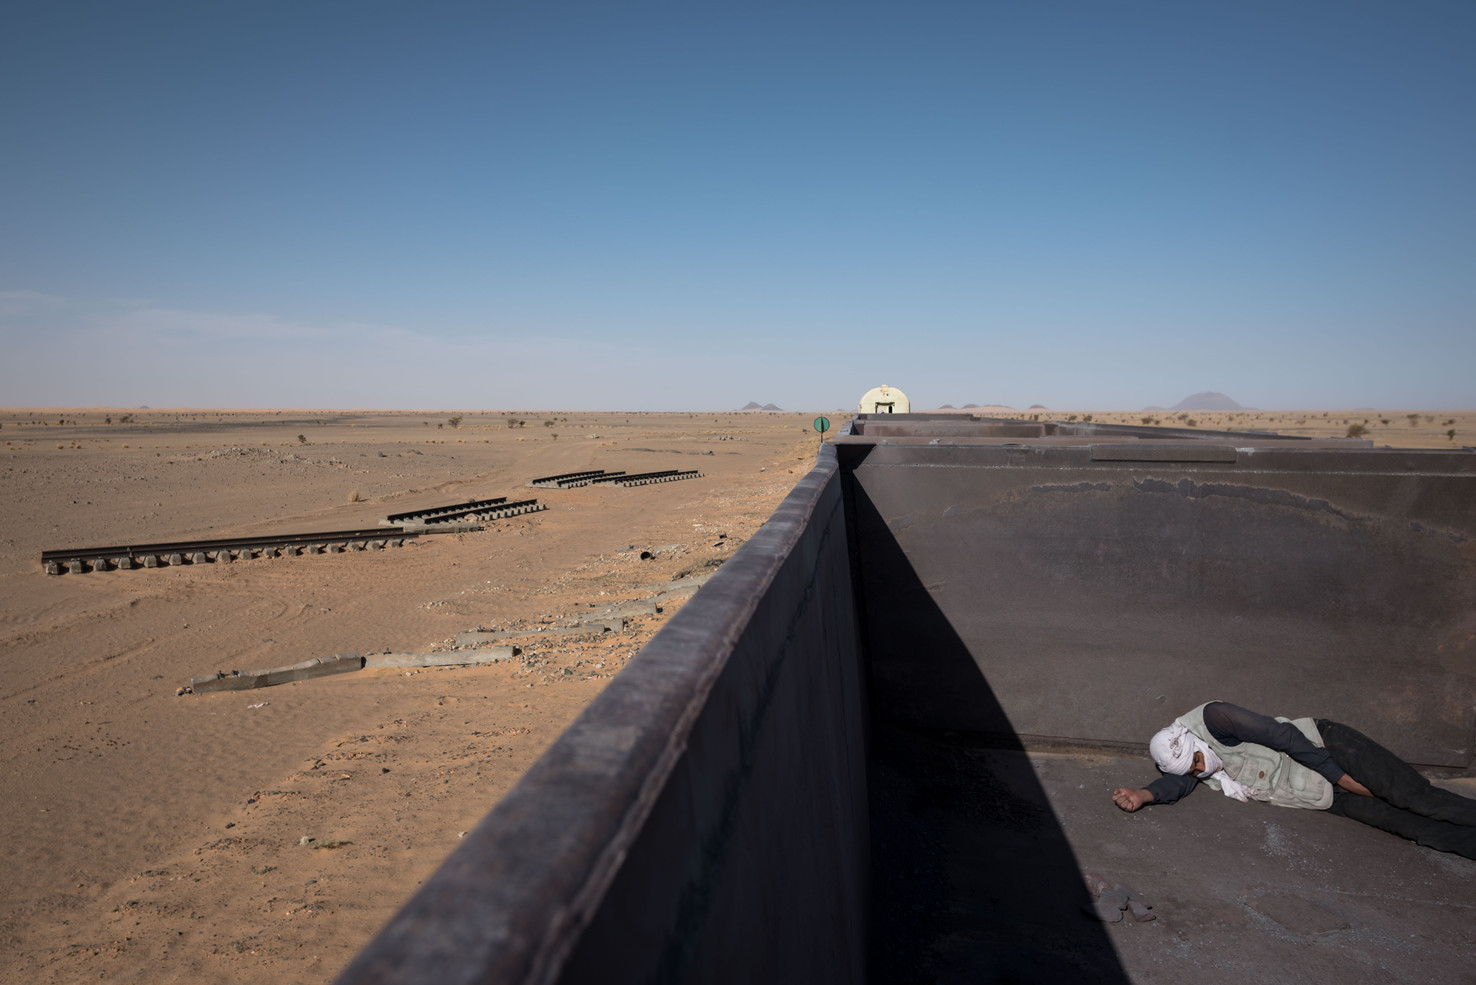 The sun quickly becomes overbearing to the hitchhikers as the open top train slowly moves along during it's 14 hour journey into the Sahara Desert.